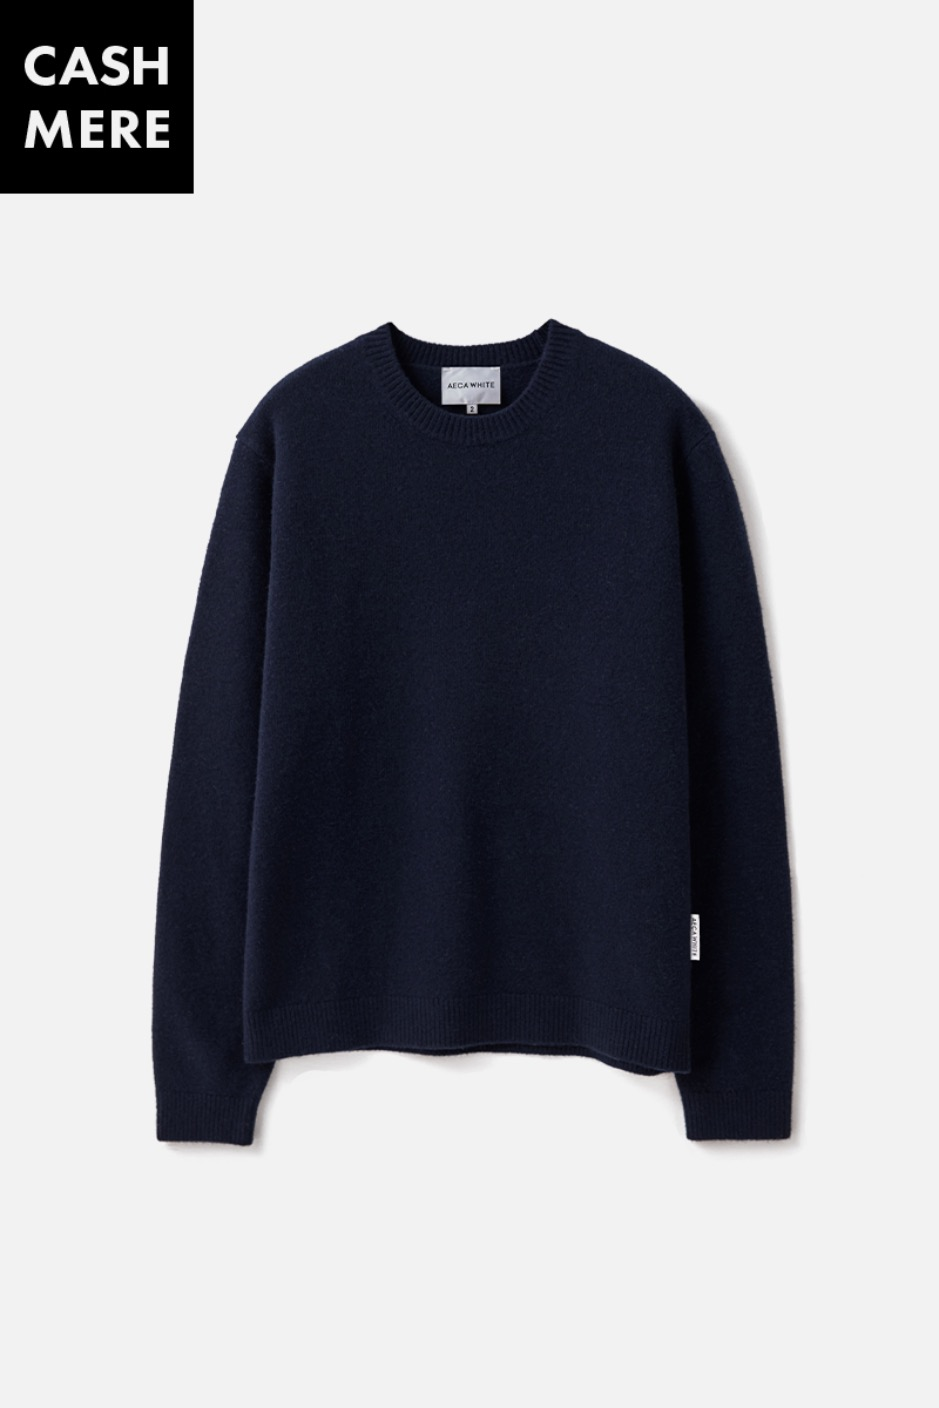 CASHMERE WOOL KNIT (Premium BASIC) -NAVY